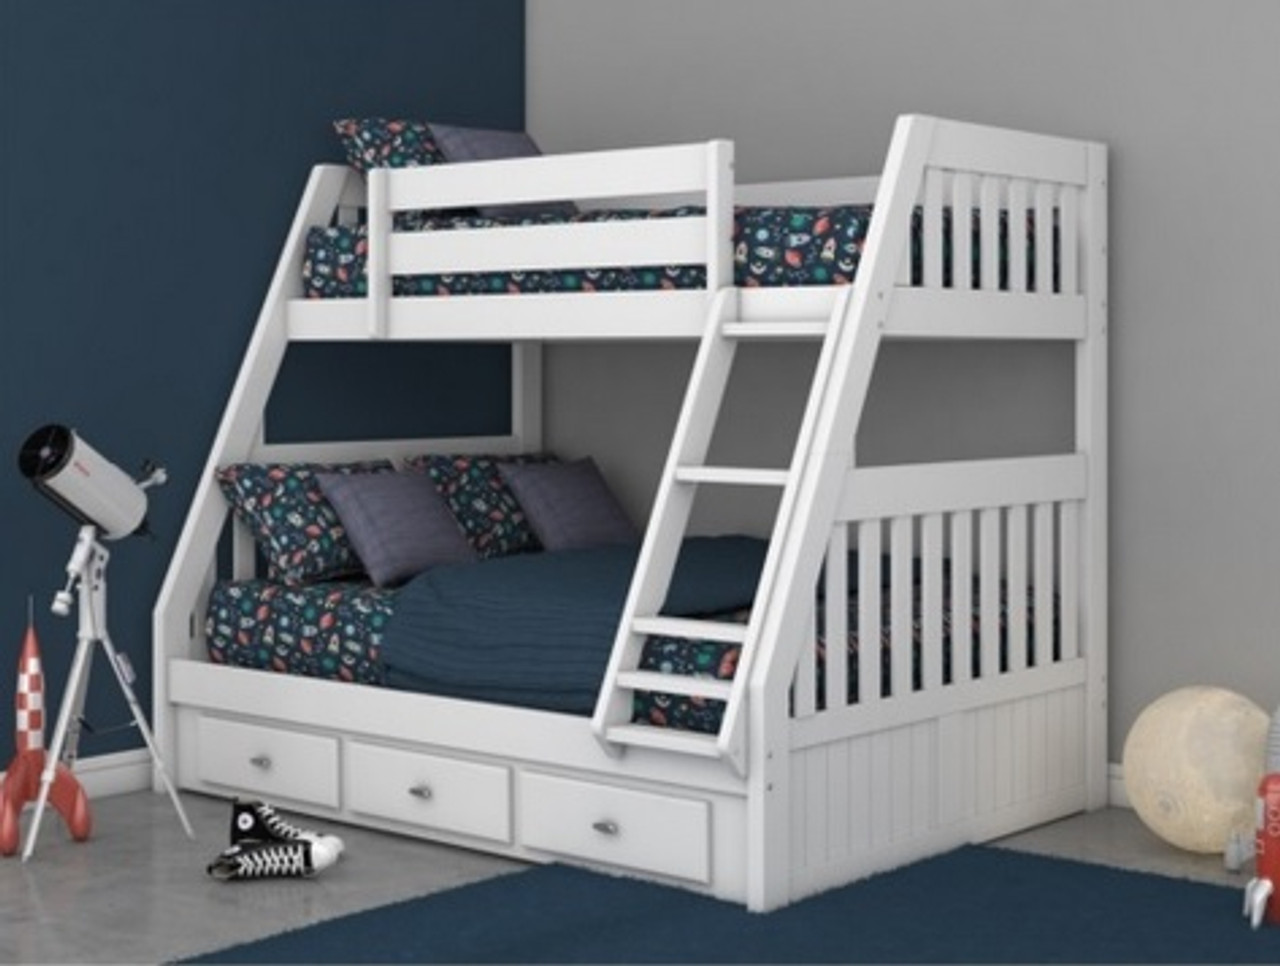 Discovery World Furniture Twin Over Full White Bunk 0218 Bed For Kids Bedroom Furniture White Twin Over Full Bunkbeds With Storage Drawers And Trundles And Kids Trundle Beds For Childrens Also Dw0218